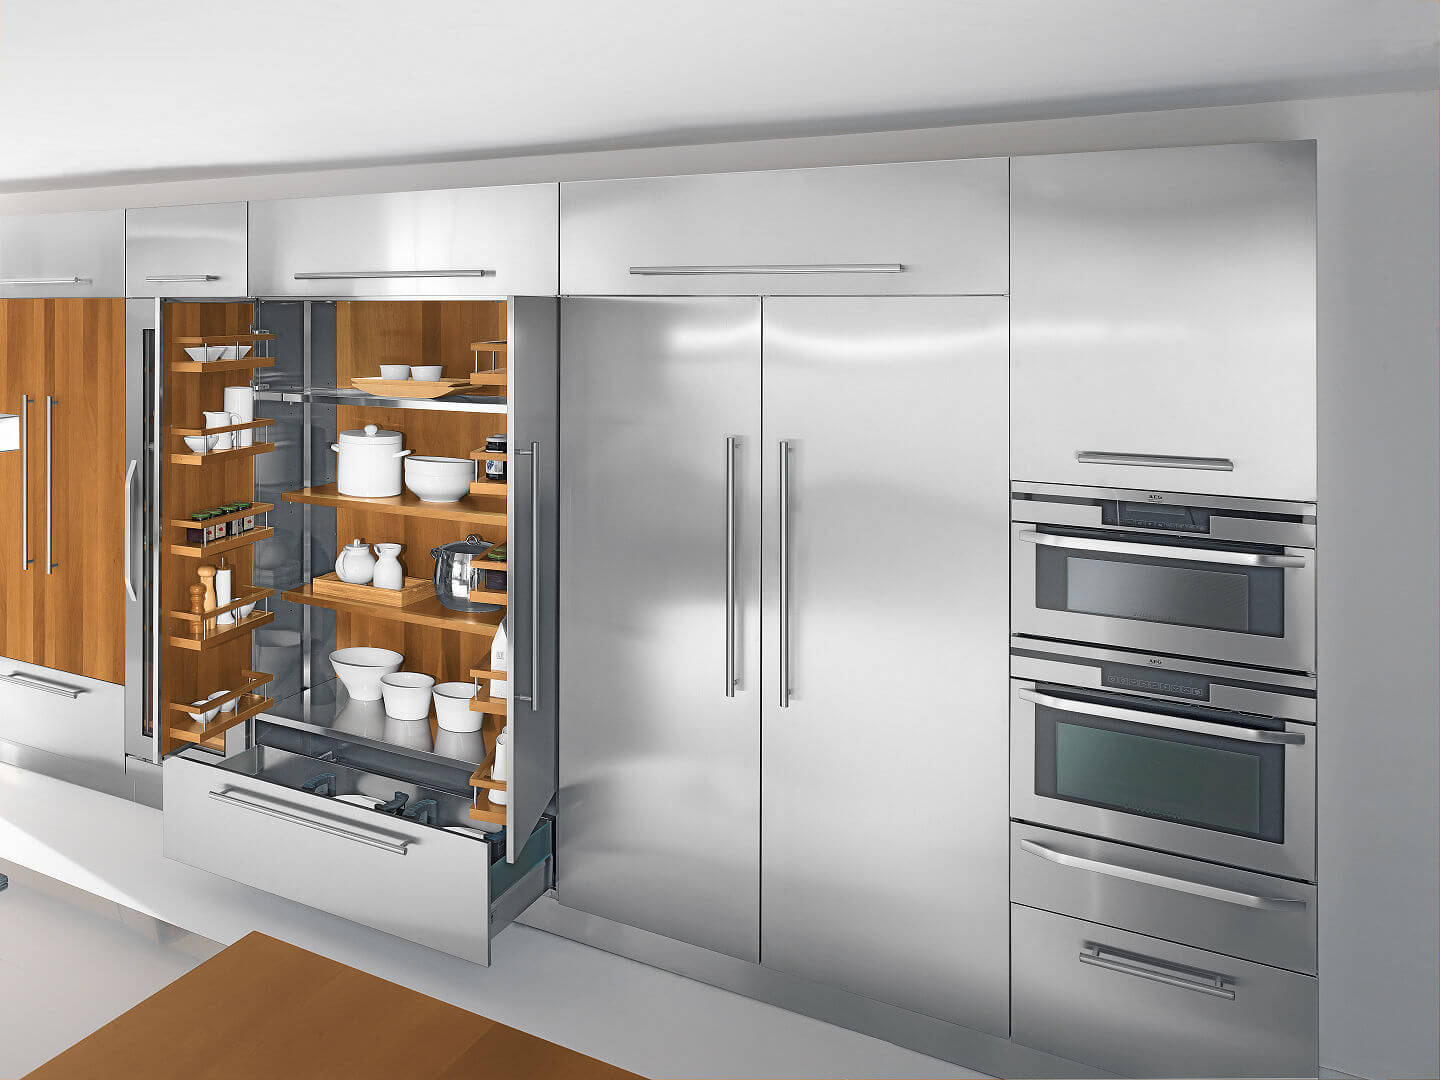 Arca Cucine Italy - Domestic stainless steel kitchens - 23 - Barna - 001